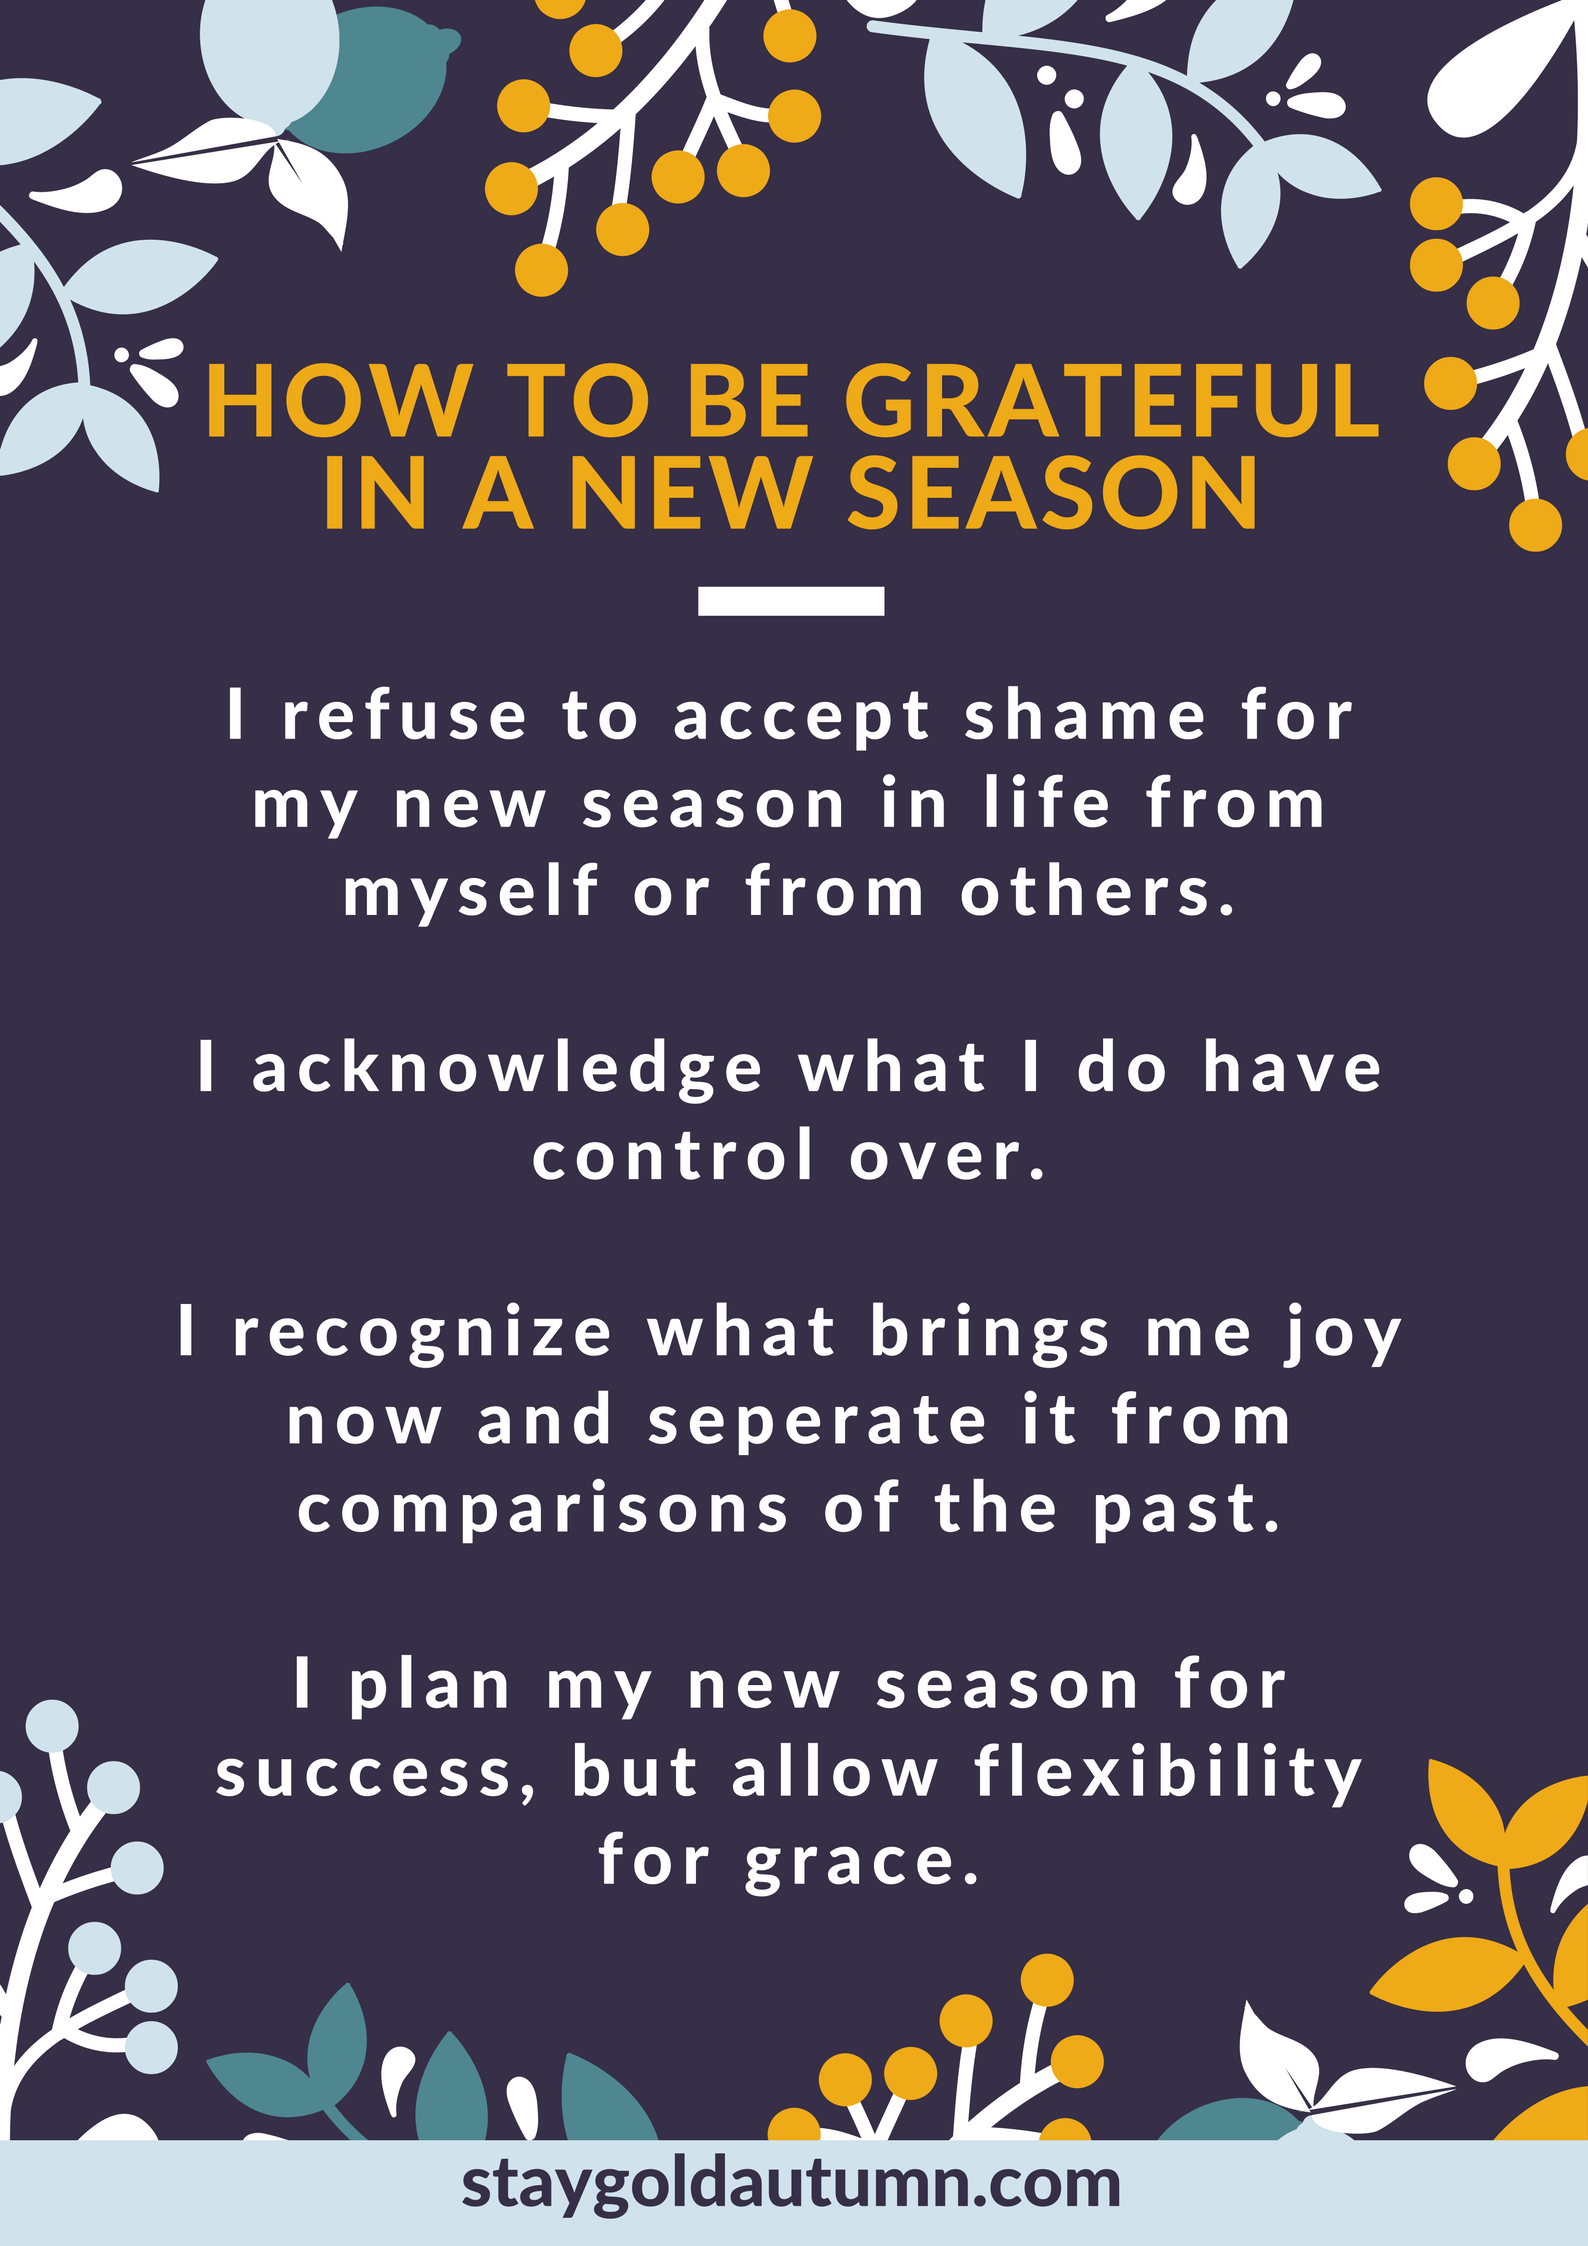 How To Be Grateful In A New Season